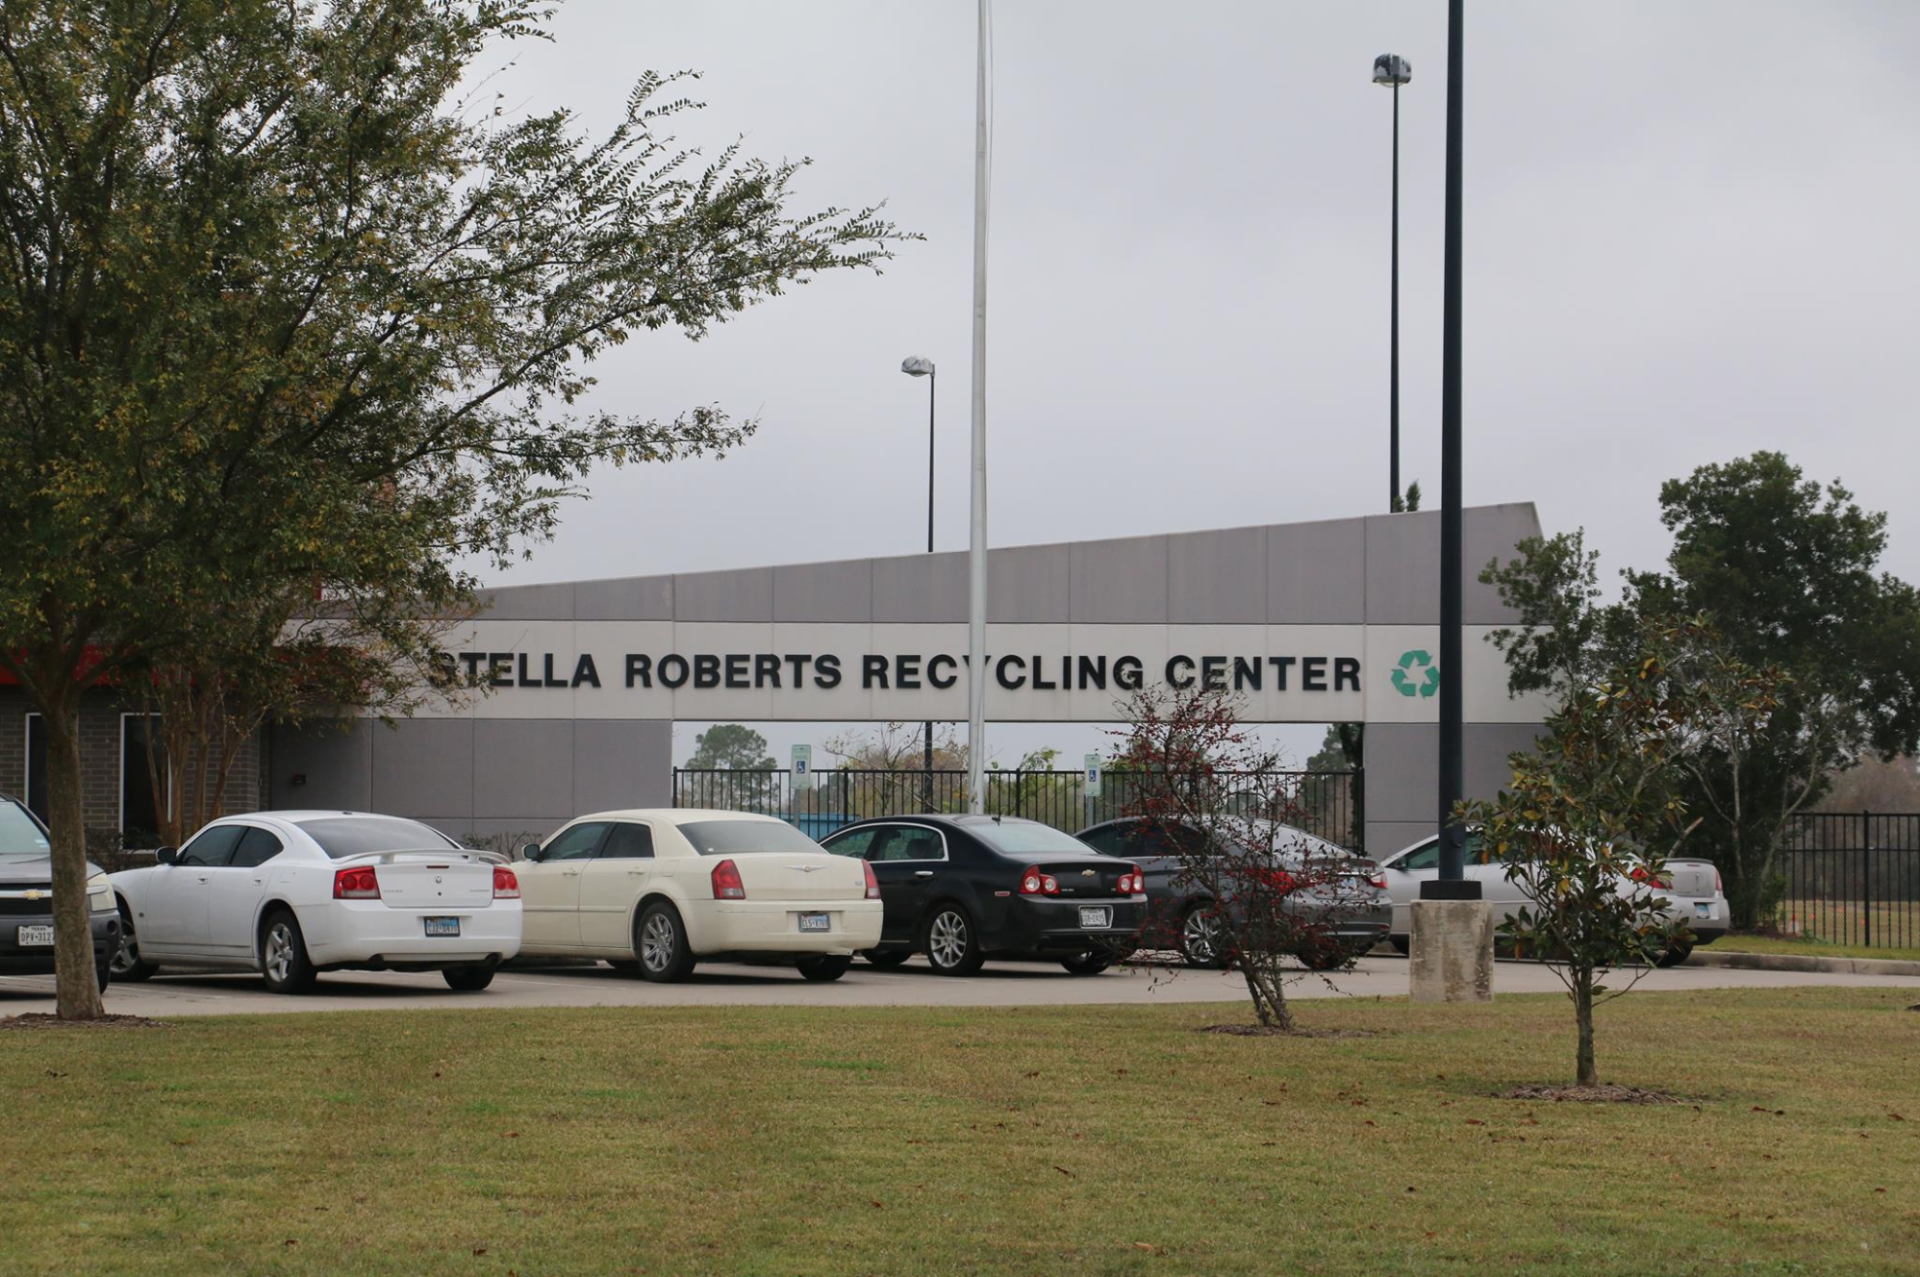 Stella Roberts Recycling Center